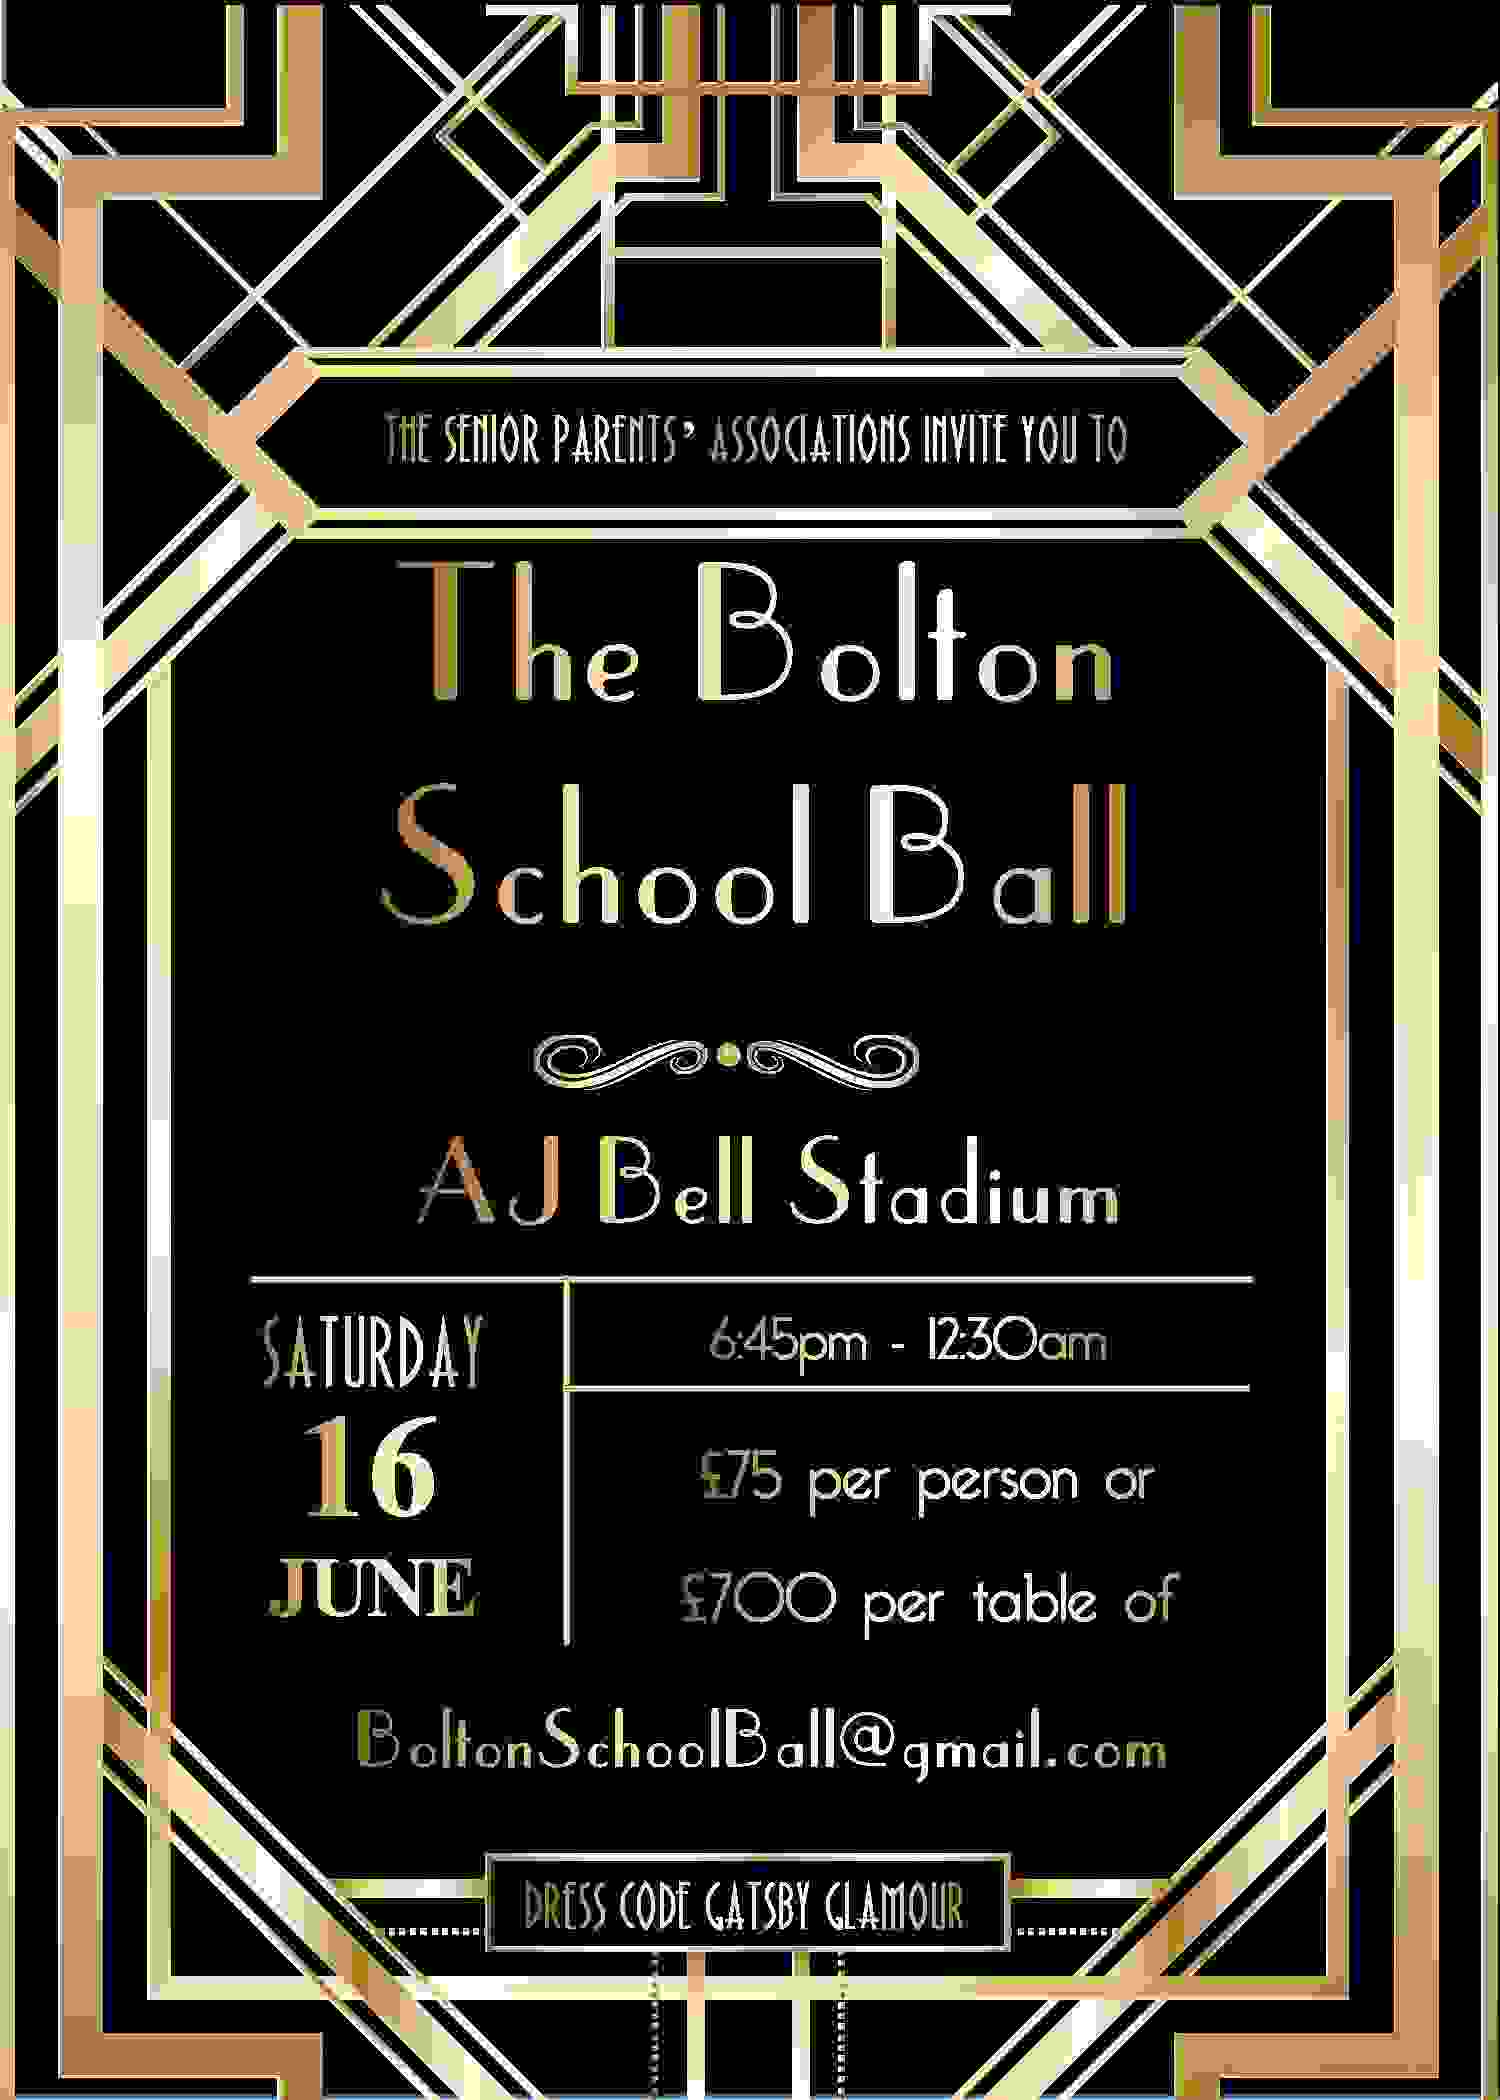 Bolton School Ball Flier Dec17